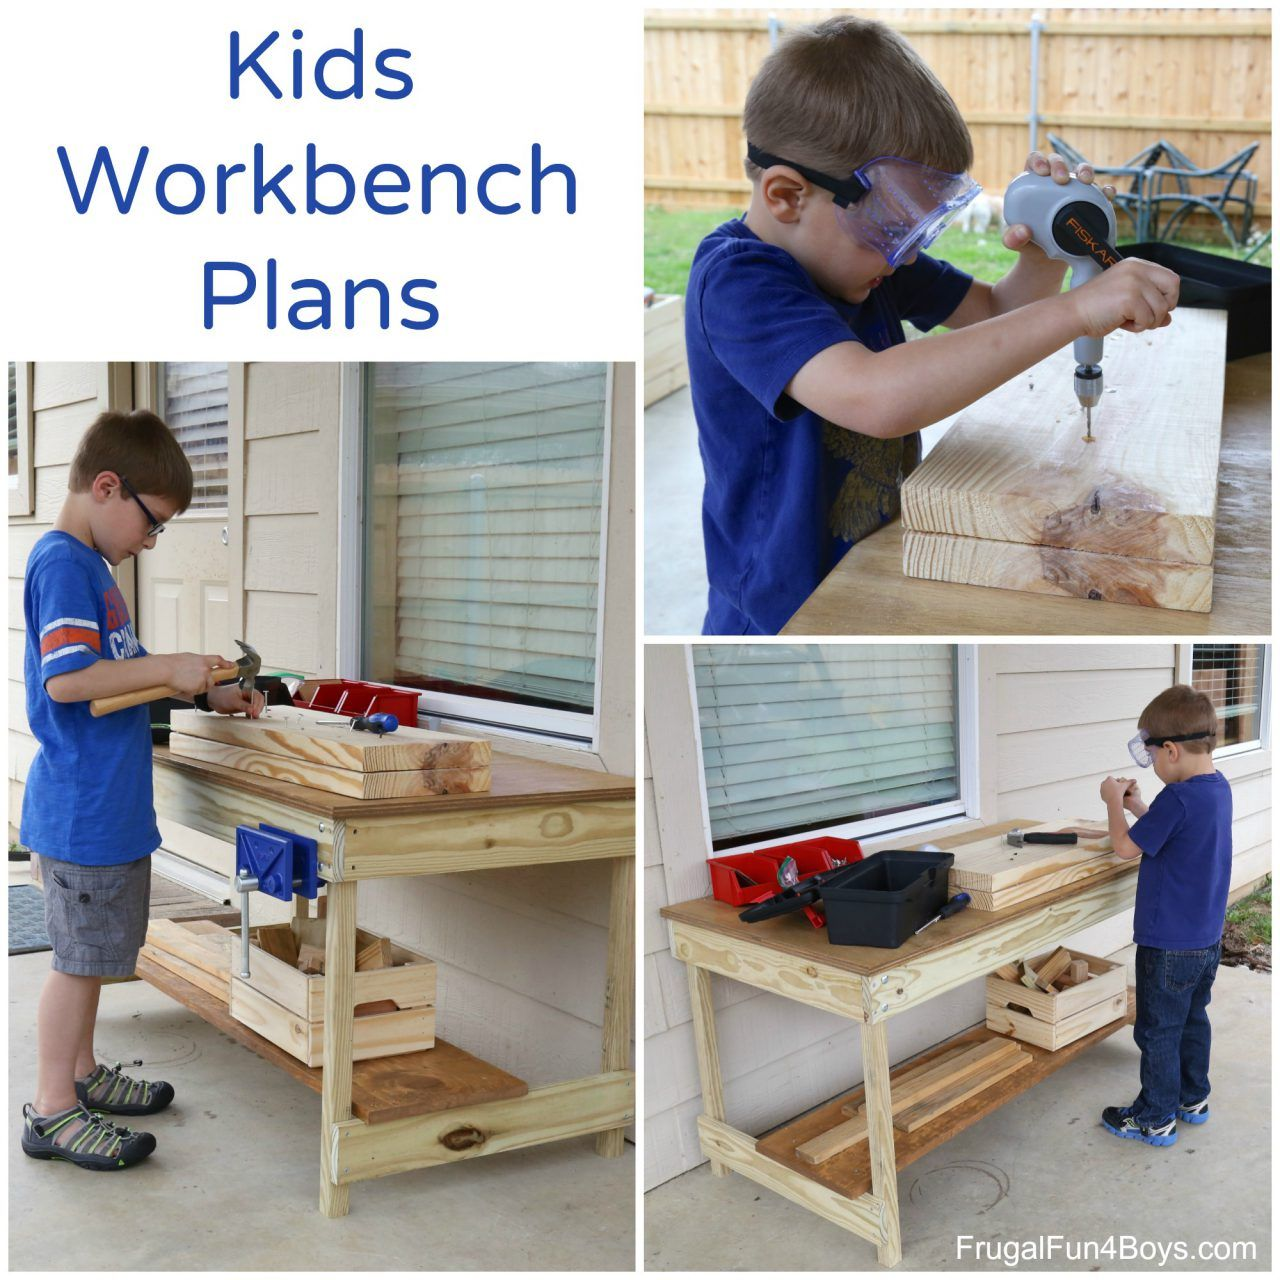 Kids' Workbench Plans: Build Your Own Kids' Woodworking Space